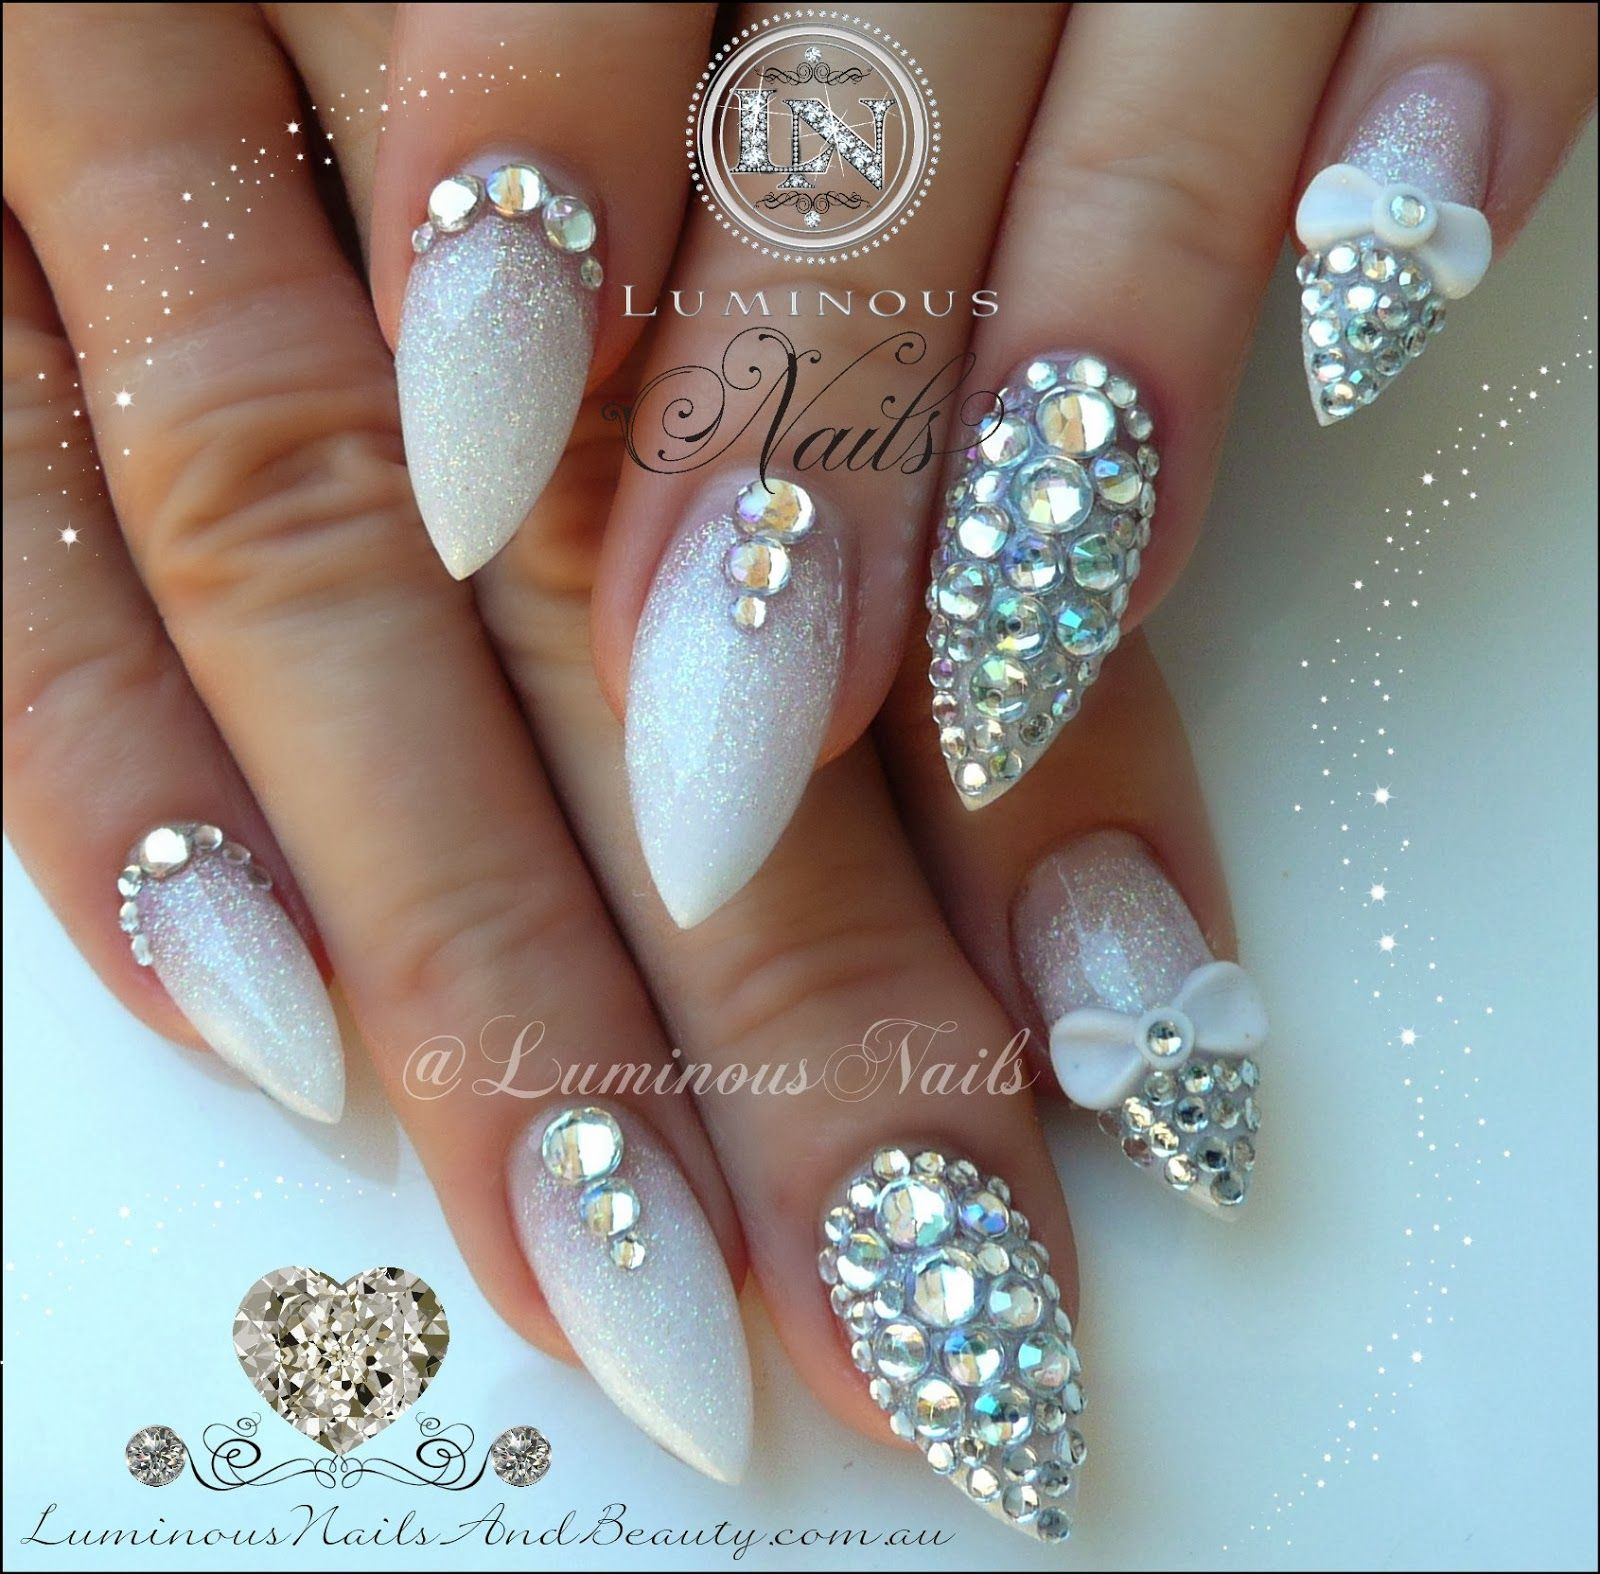 Here Comes The Bride With Some Awesome Nails: Here Comes The Bling, Wedding Nails With Rhinestones And